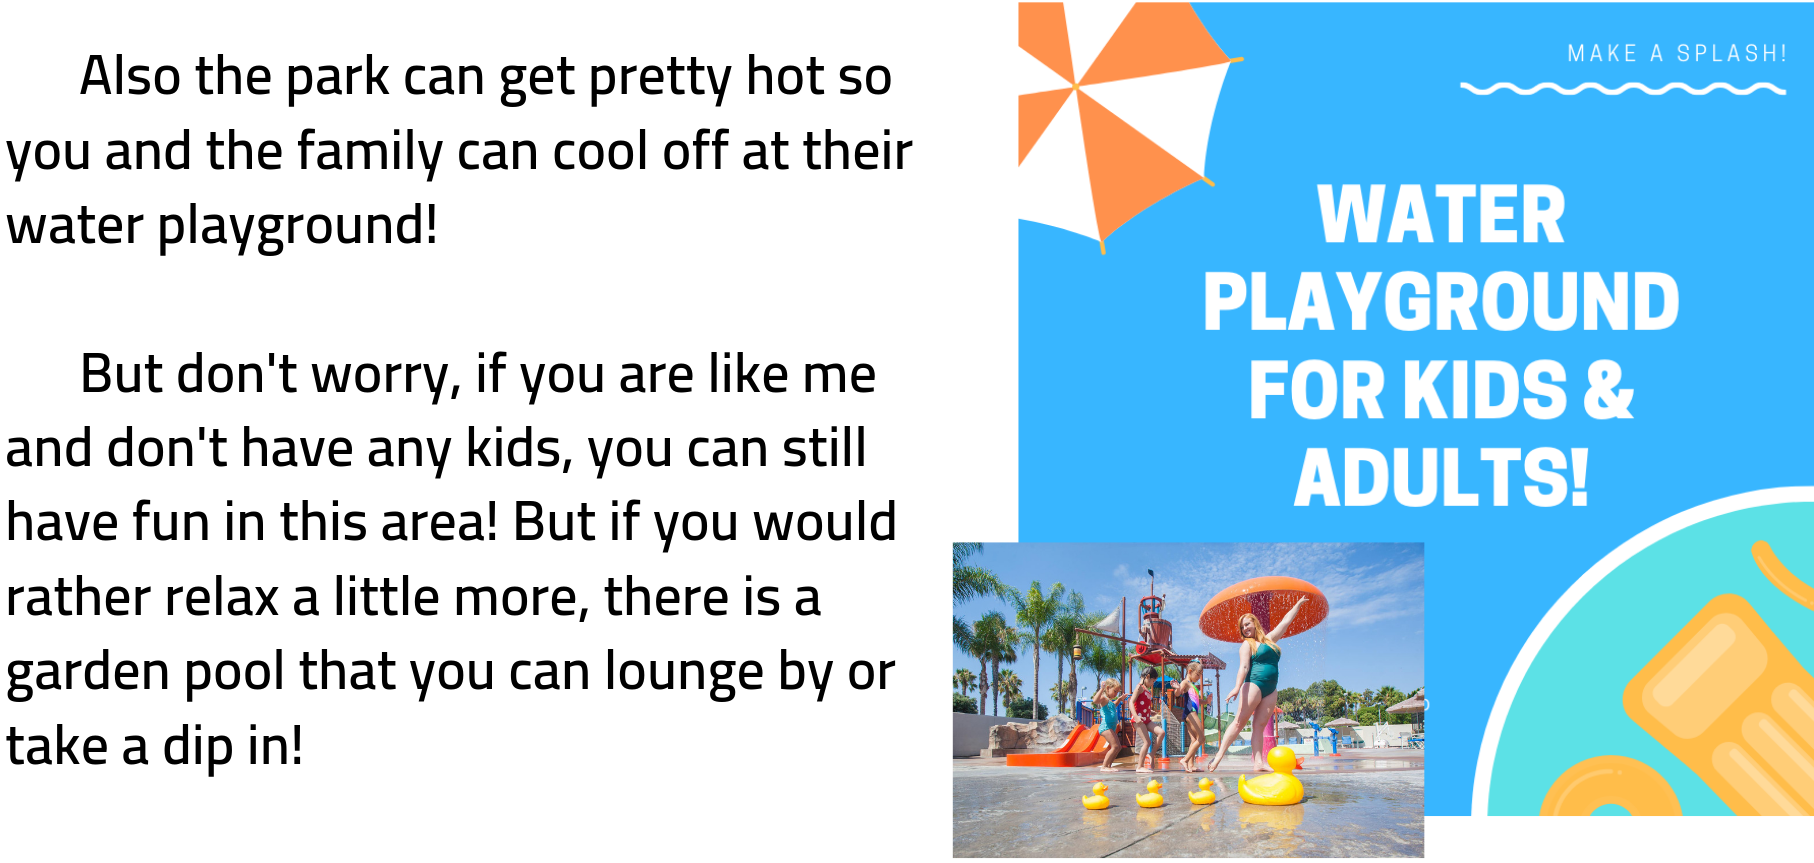 Also the park can get pretty hot so you and the family can cool off at their water playground!        But don't worry, if you are like me and don't have any kids, you can still have fun in this area! But if you would rather relax a little more, there is a garden pool that you can lounge by or take a dip in!